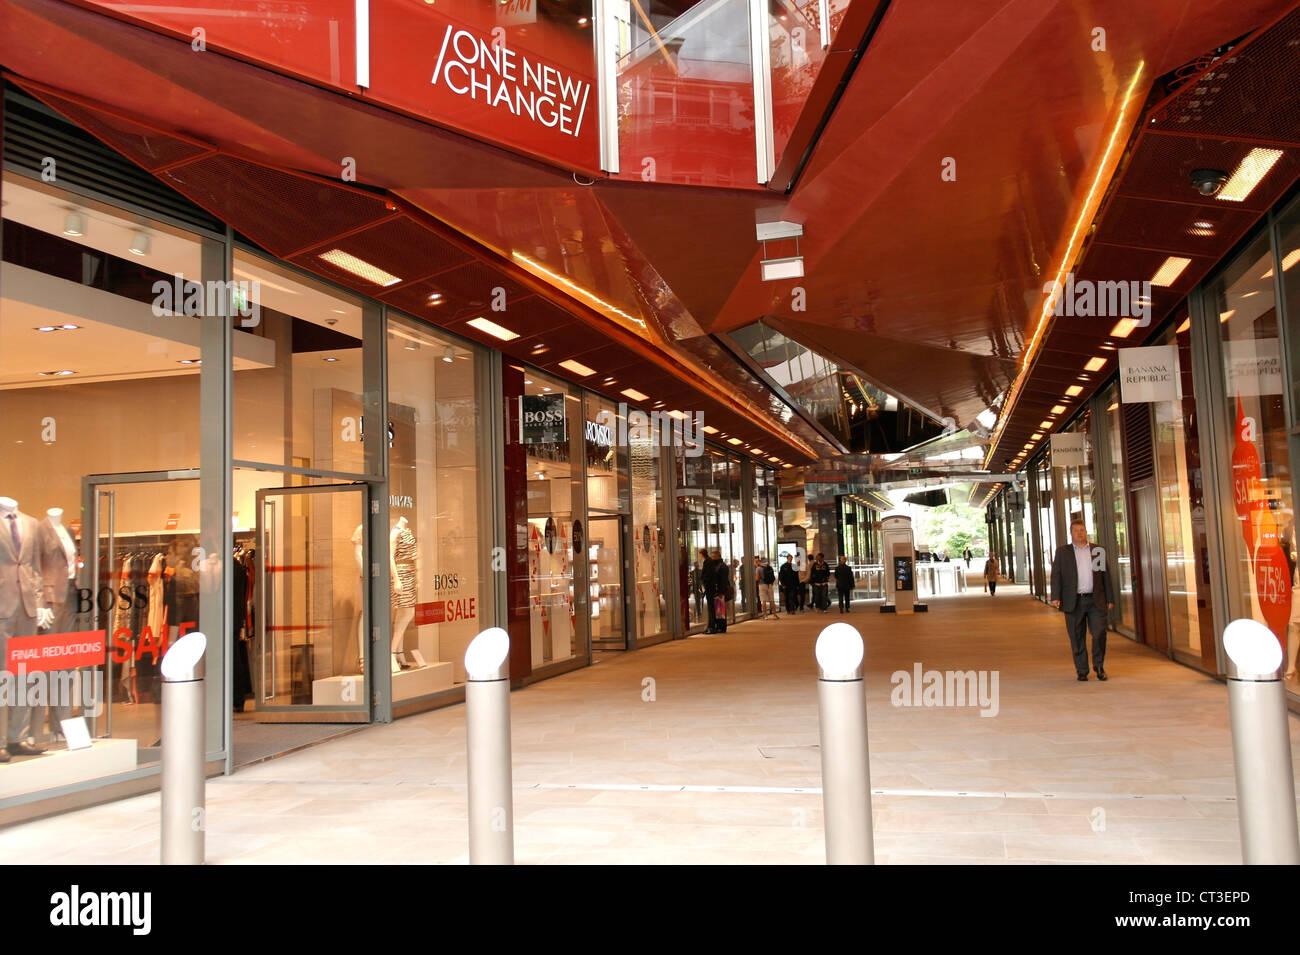 One new change shopping mall at St. Paul in City of London - Stock Image